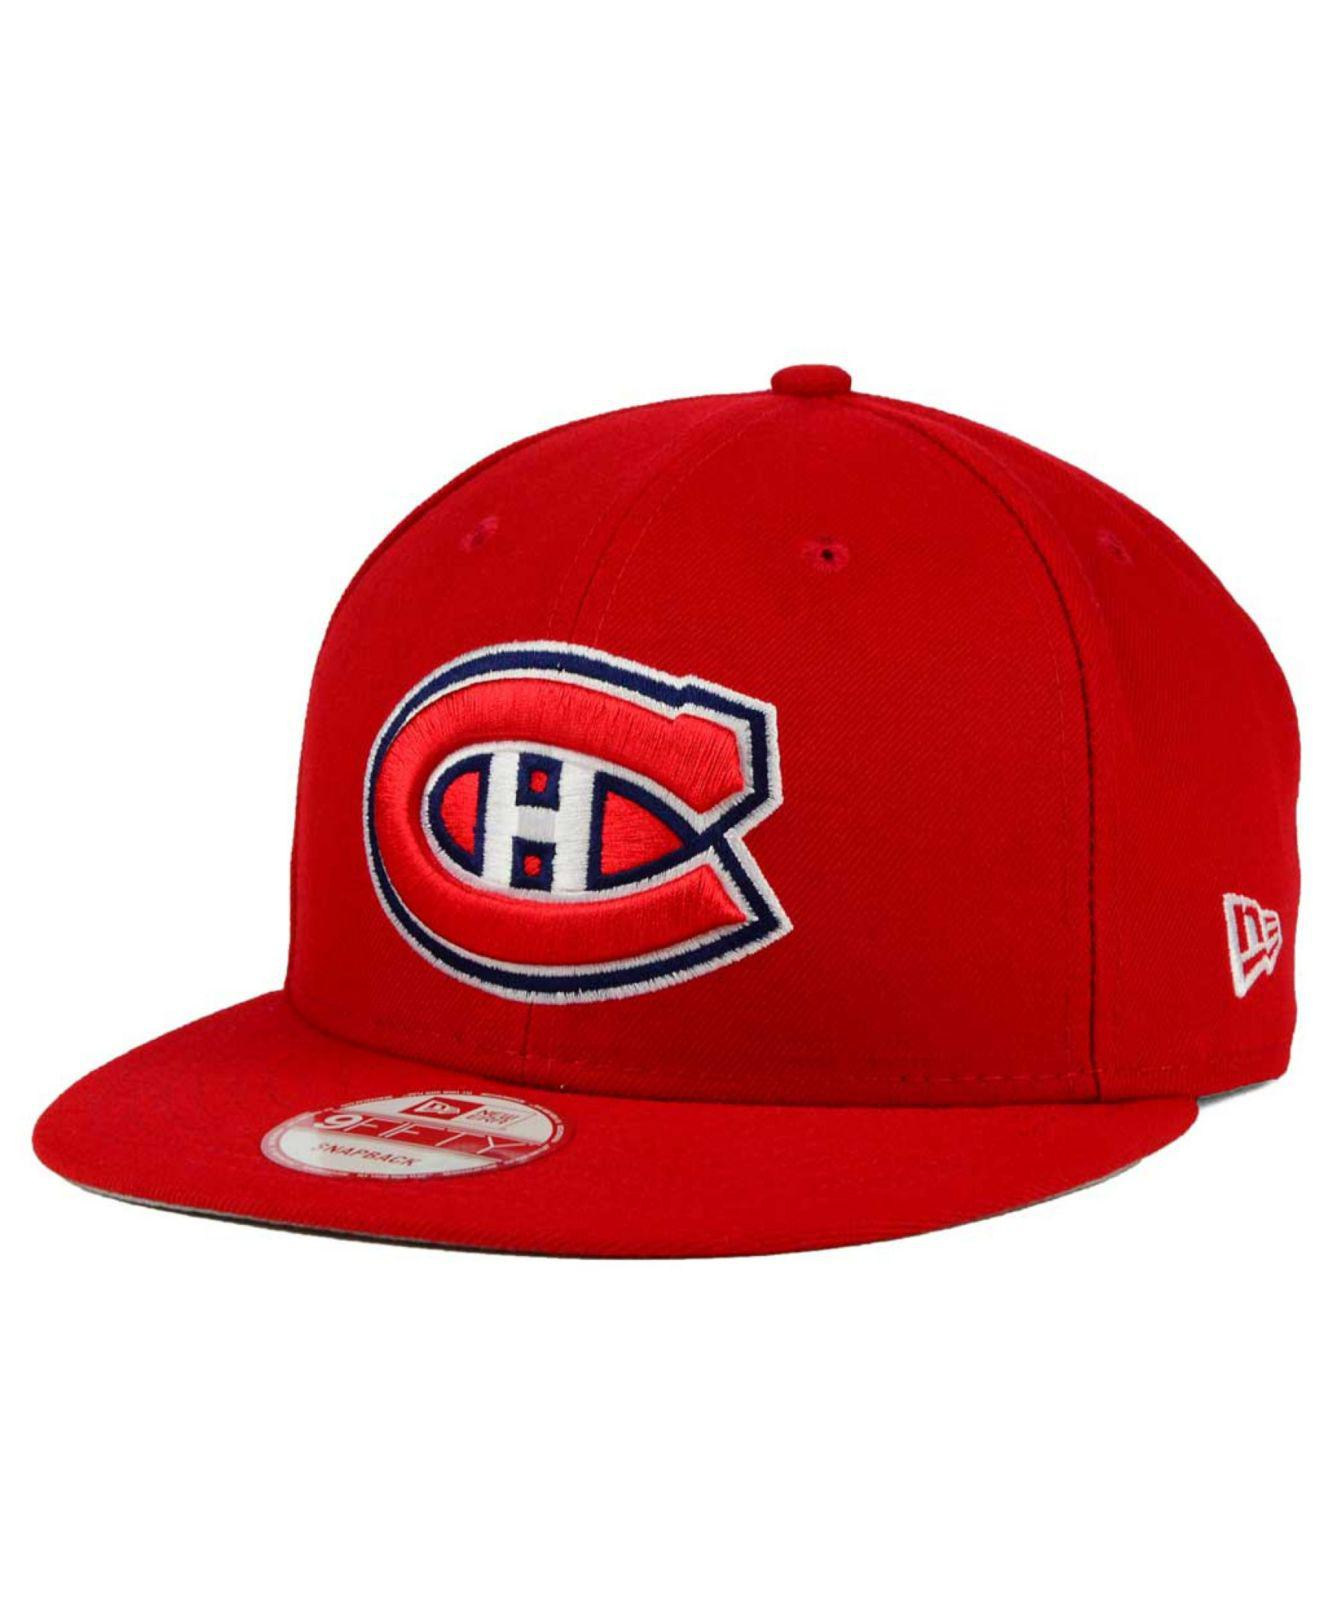 Lyst - KTZ Montreal Canadiens All Day 9fifty Snapback Cap in Red for Men b963ea36cf32